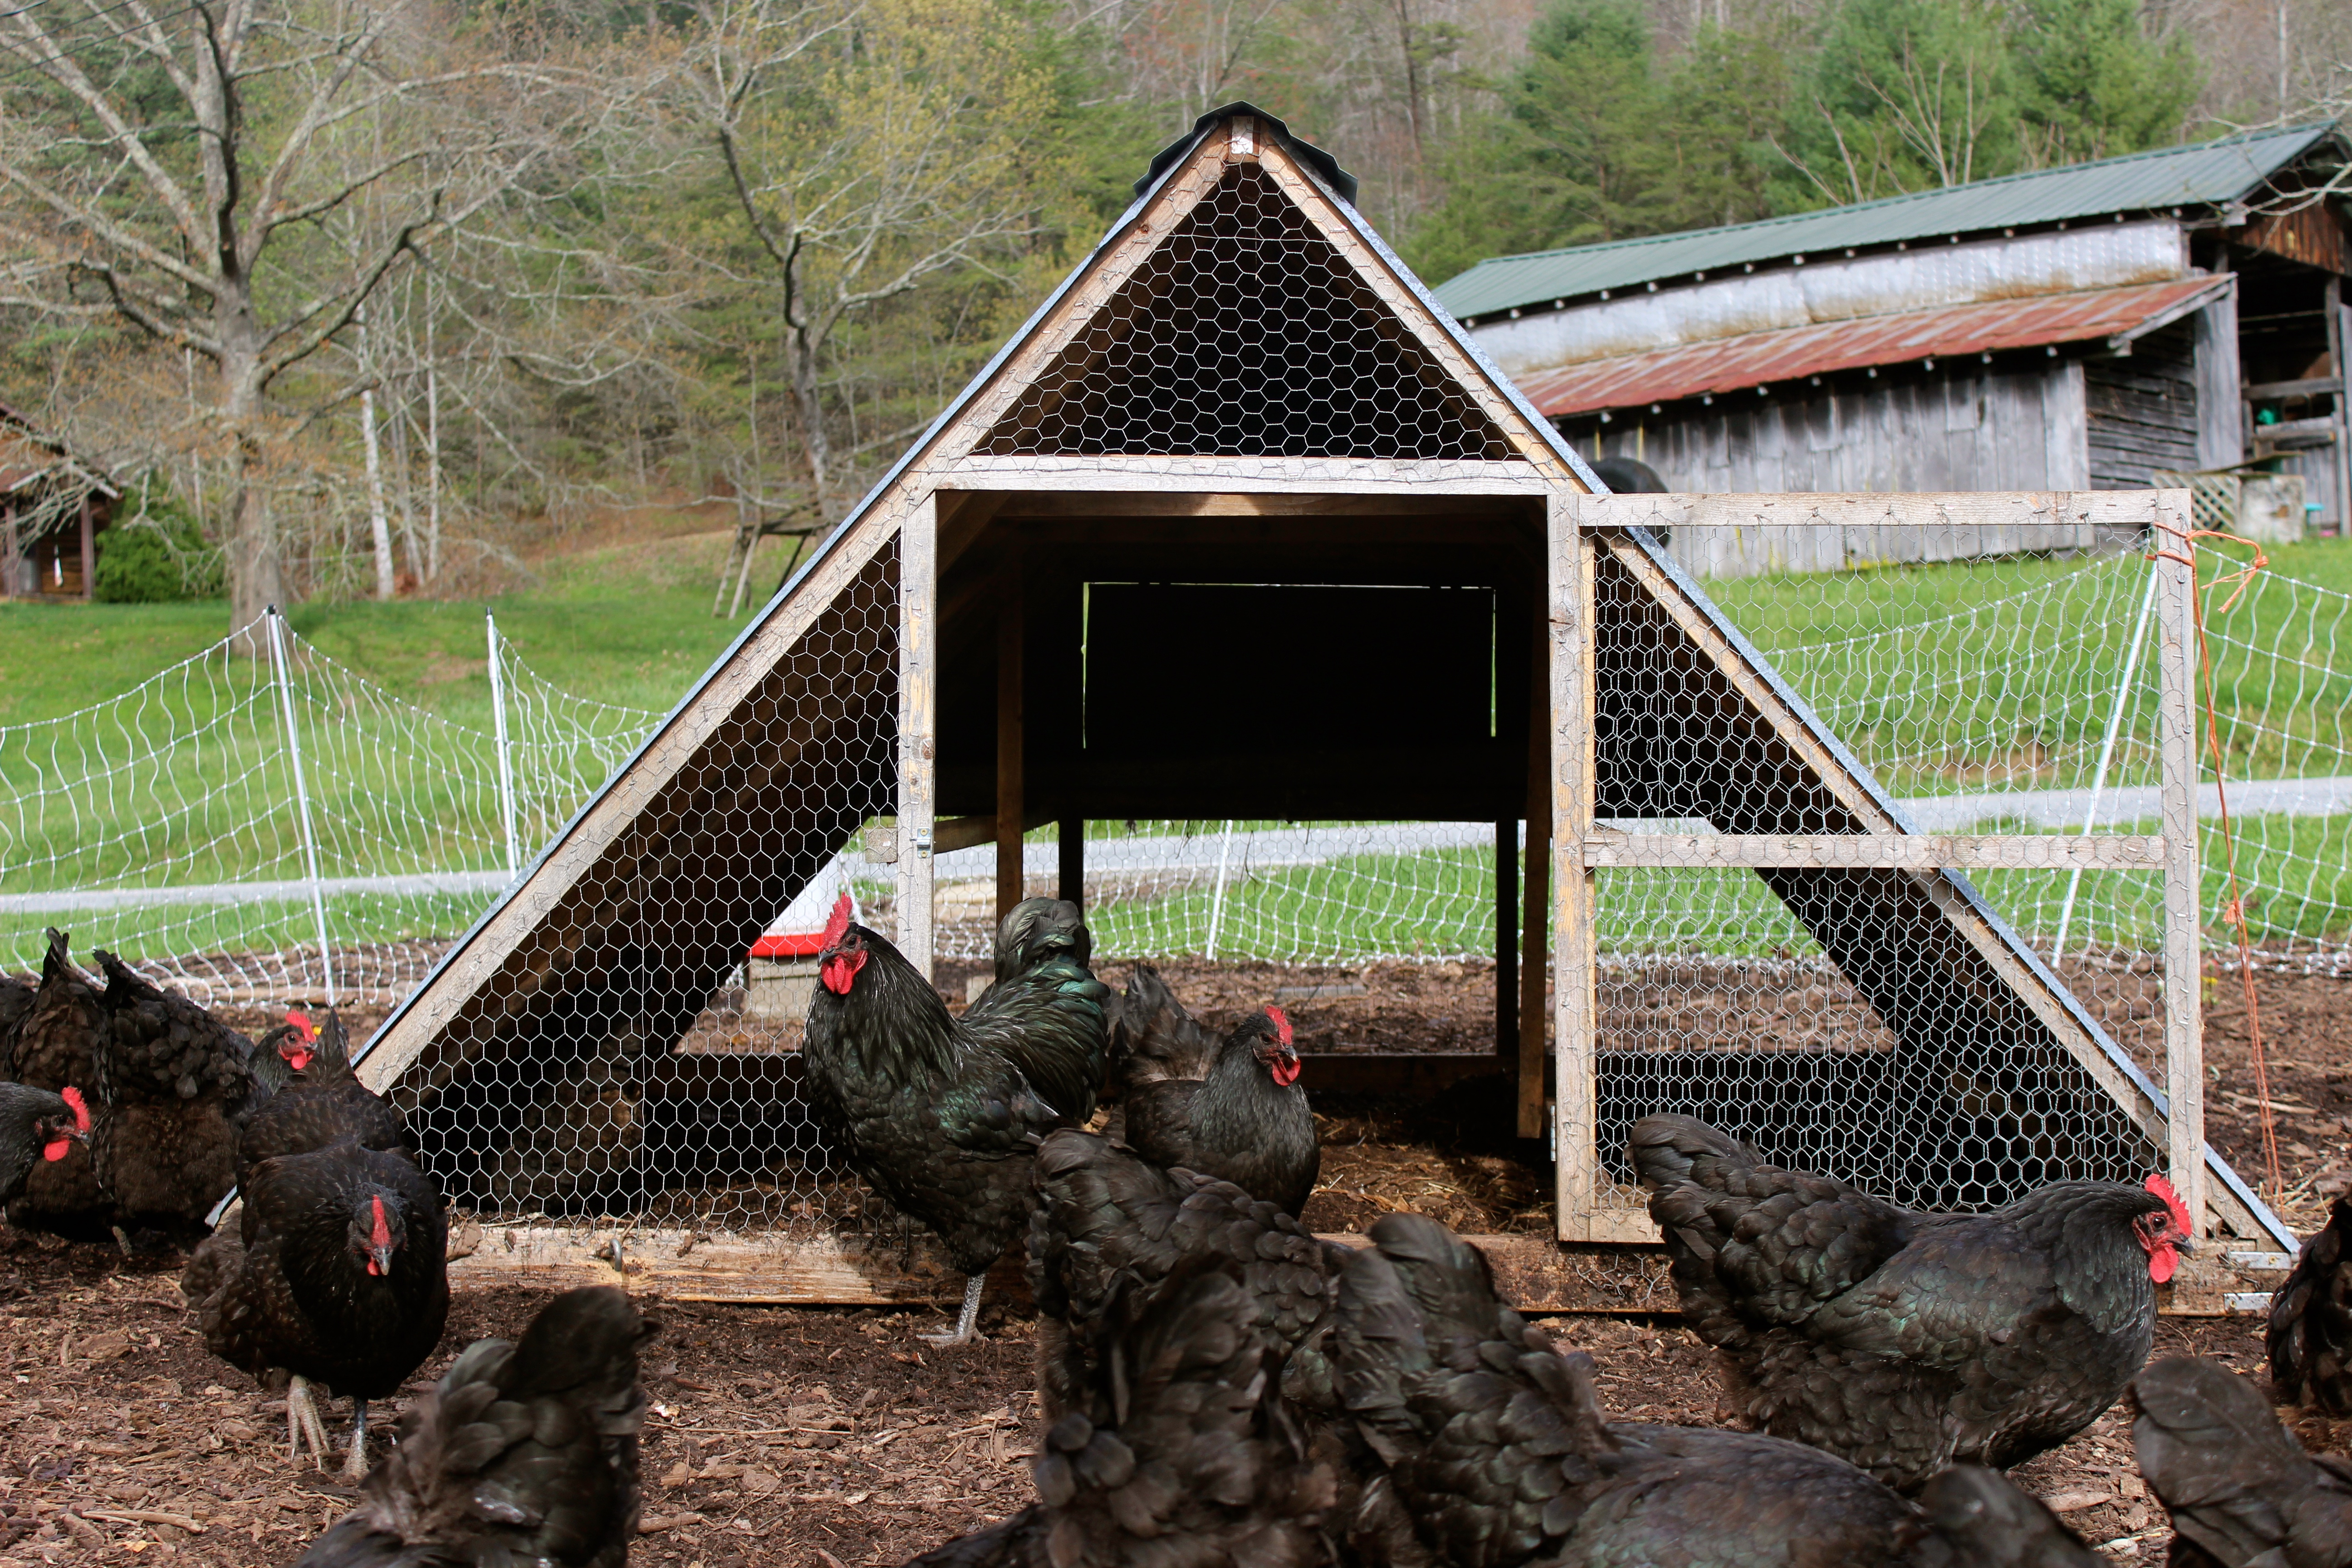 Four basic functions of a chicken coop